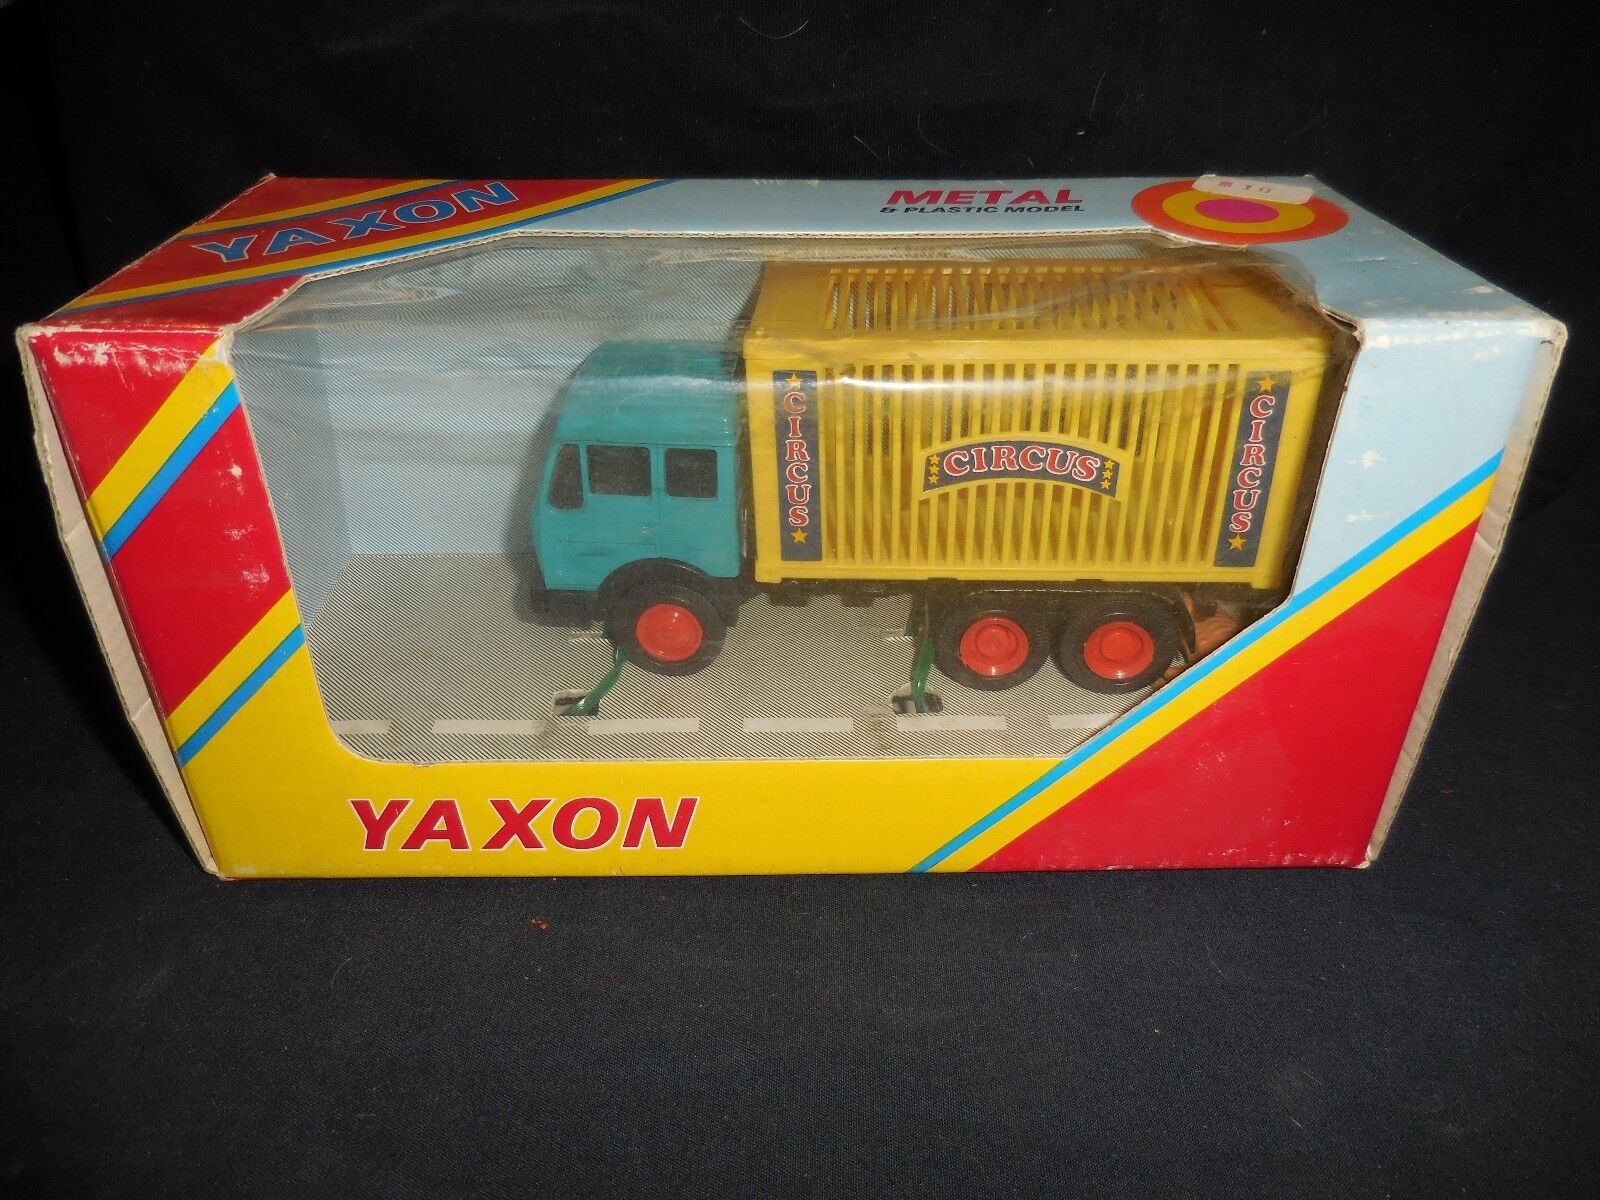 Italien Yaxon Mercedes Benz Circus Truck w Lion 1 43 Toy Looks Mint låda shower